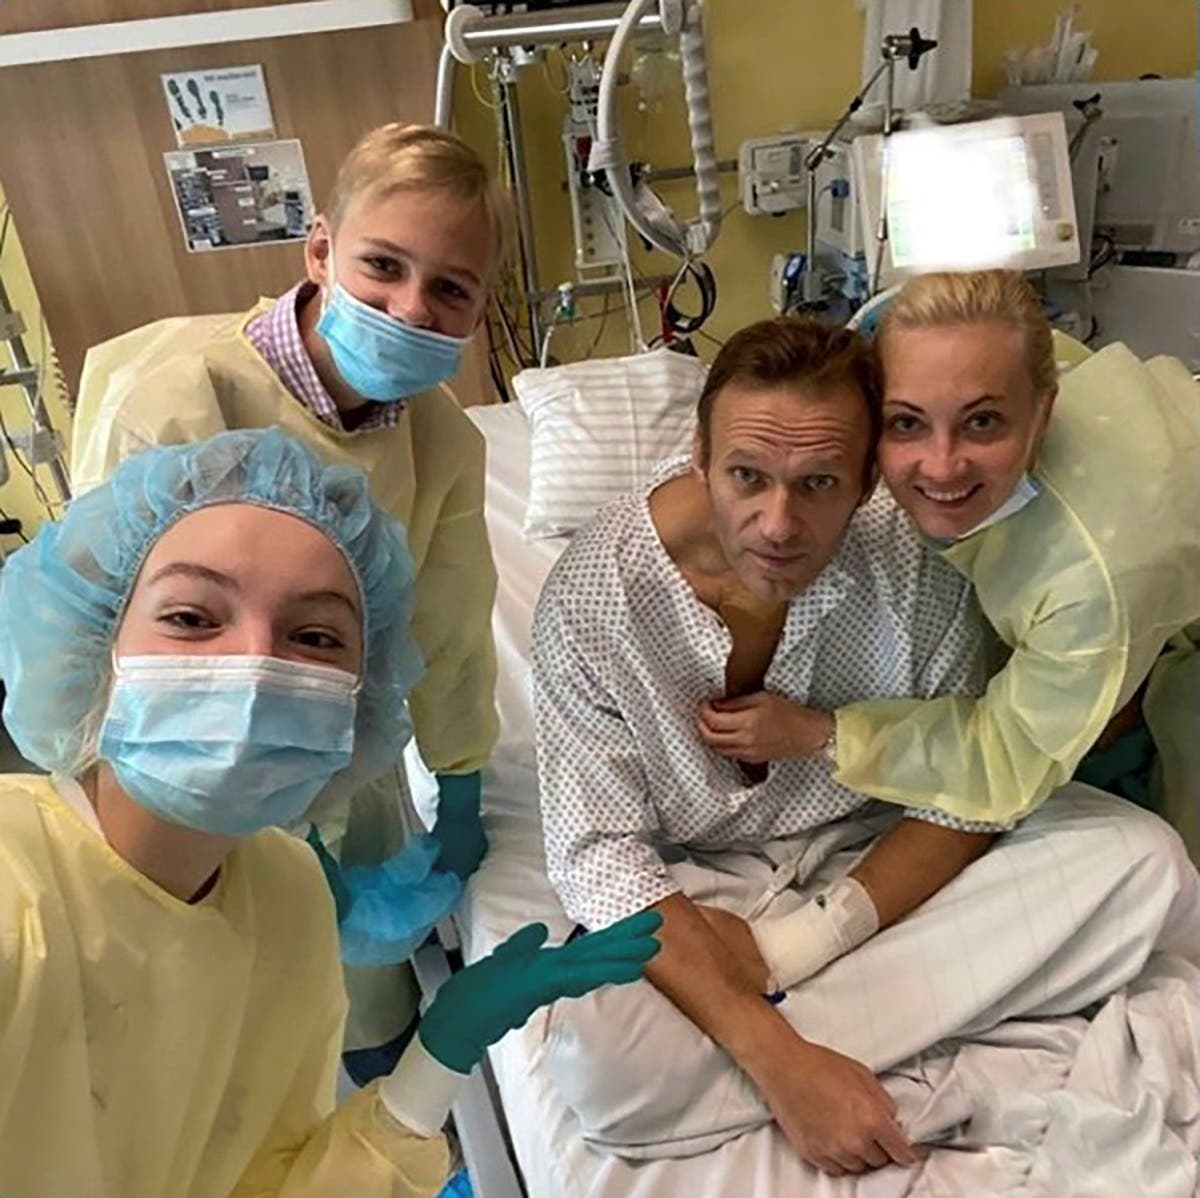 Russian opposition politician Alexei Navalny and his family members at Charite hospital in Berlin, Germany, in this undated image obtained from social media September 15, 2020. (Reuters)